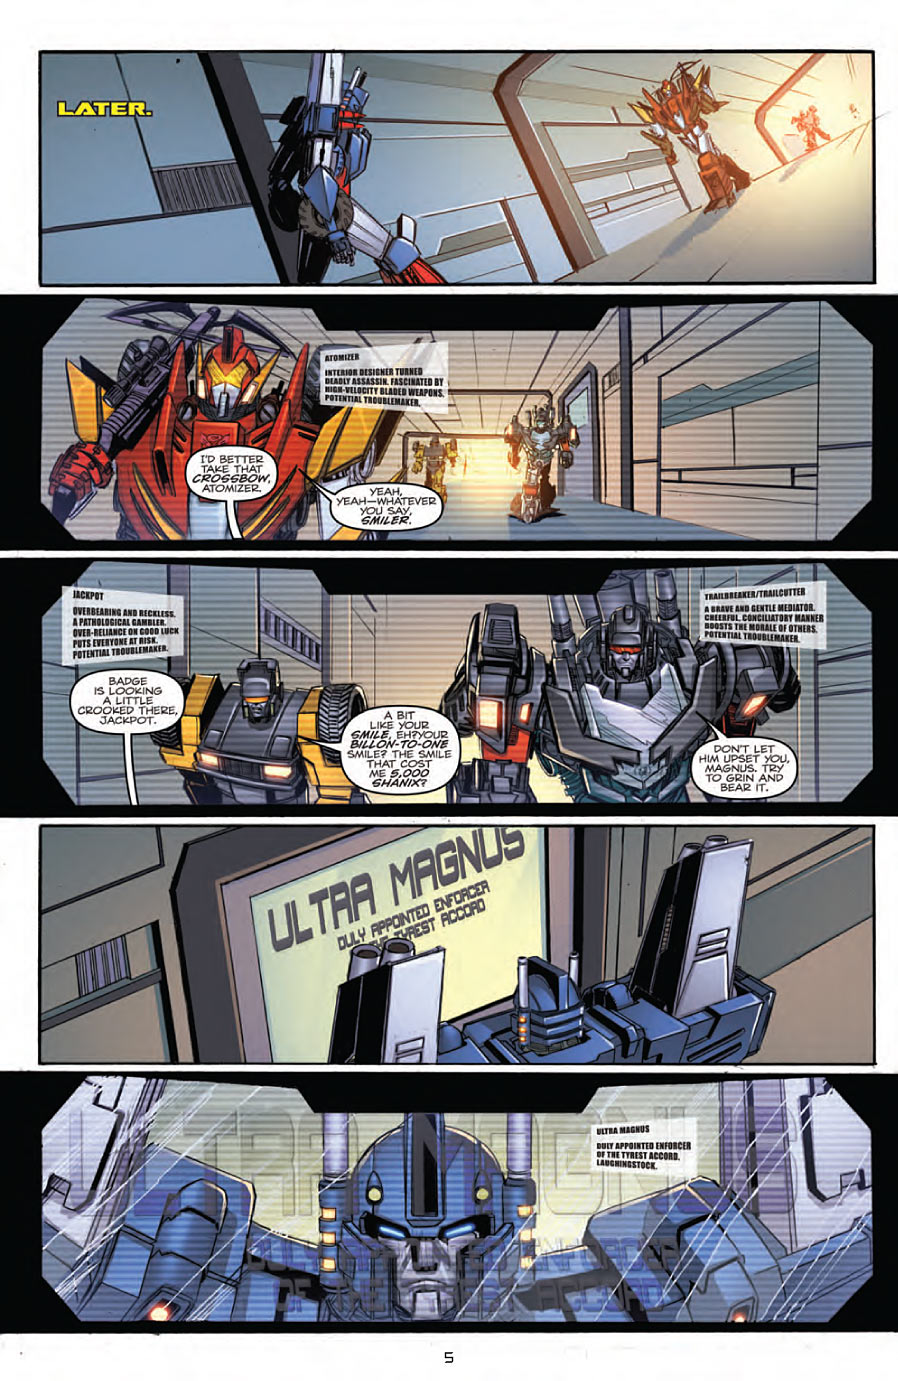 transformers-comics-more-than-meets-the-eye-annual-2012-page-5 Transformers More Than Meets the Eye Annual 2012